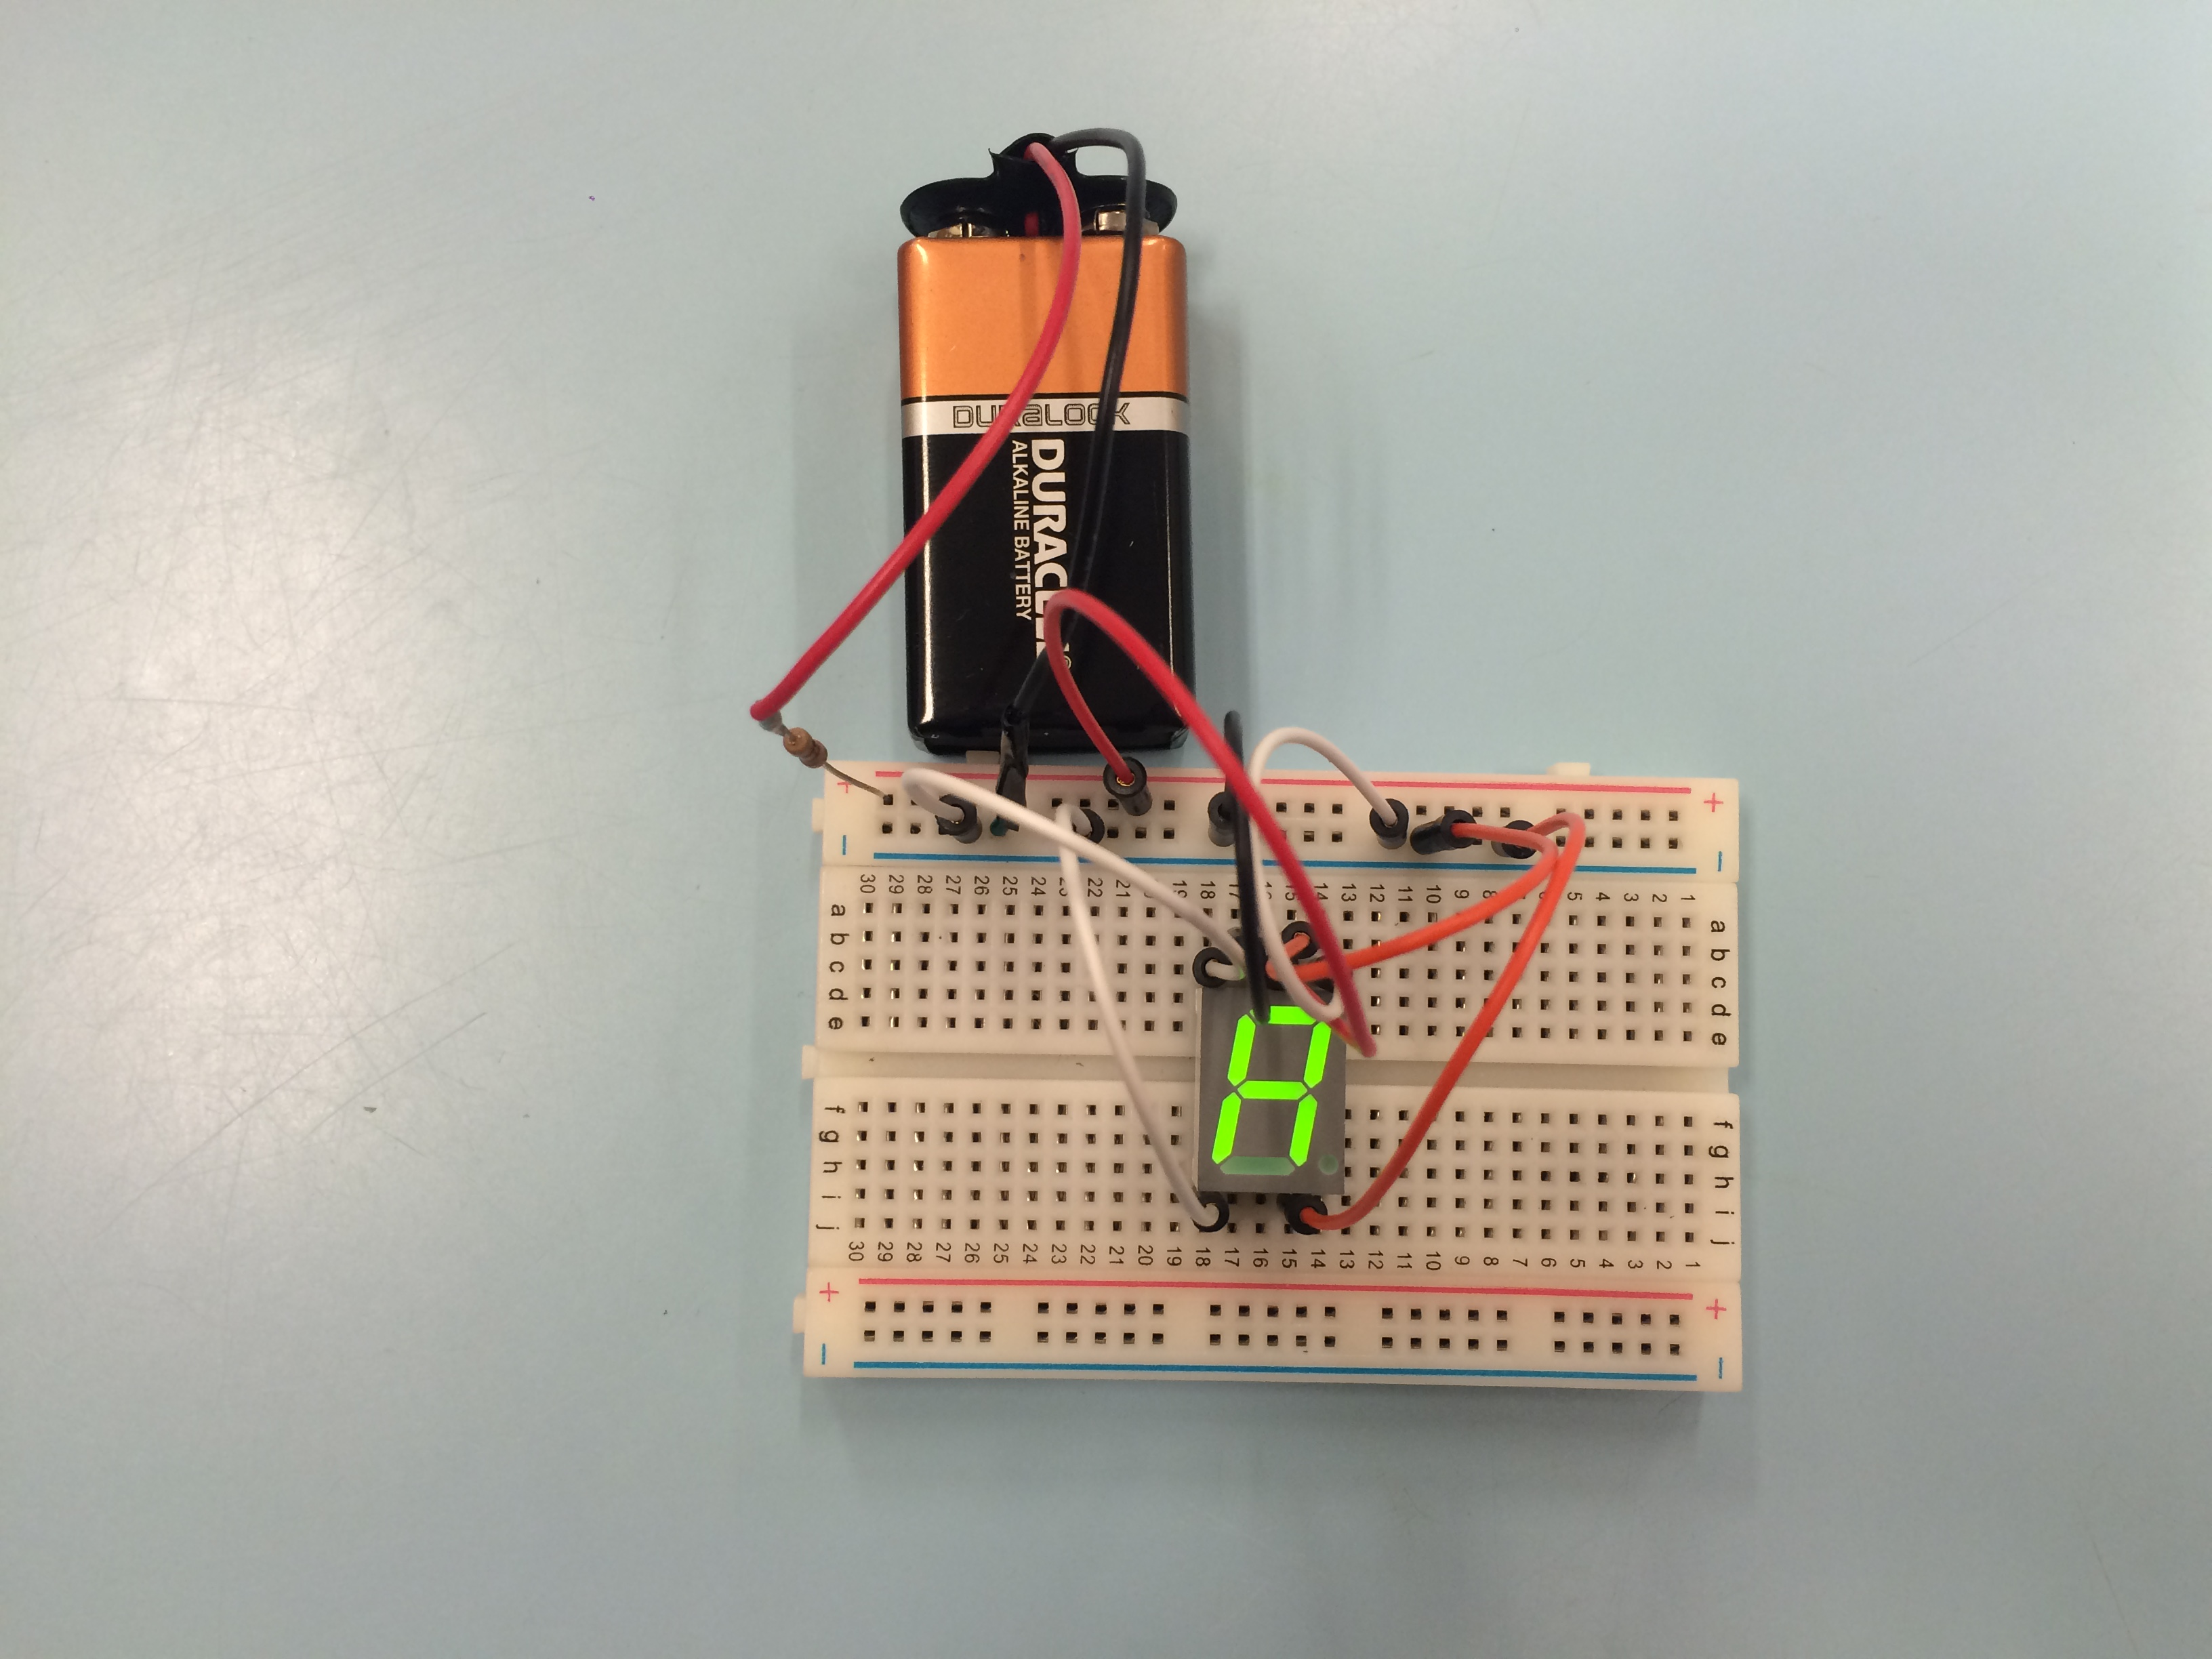 An Introduction To Seven Segment Displays